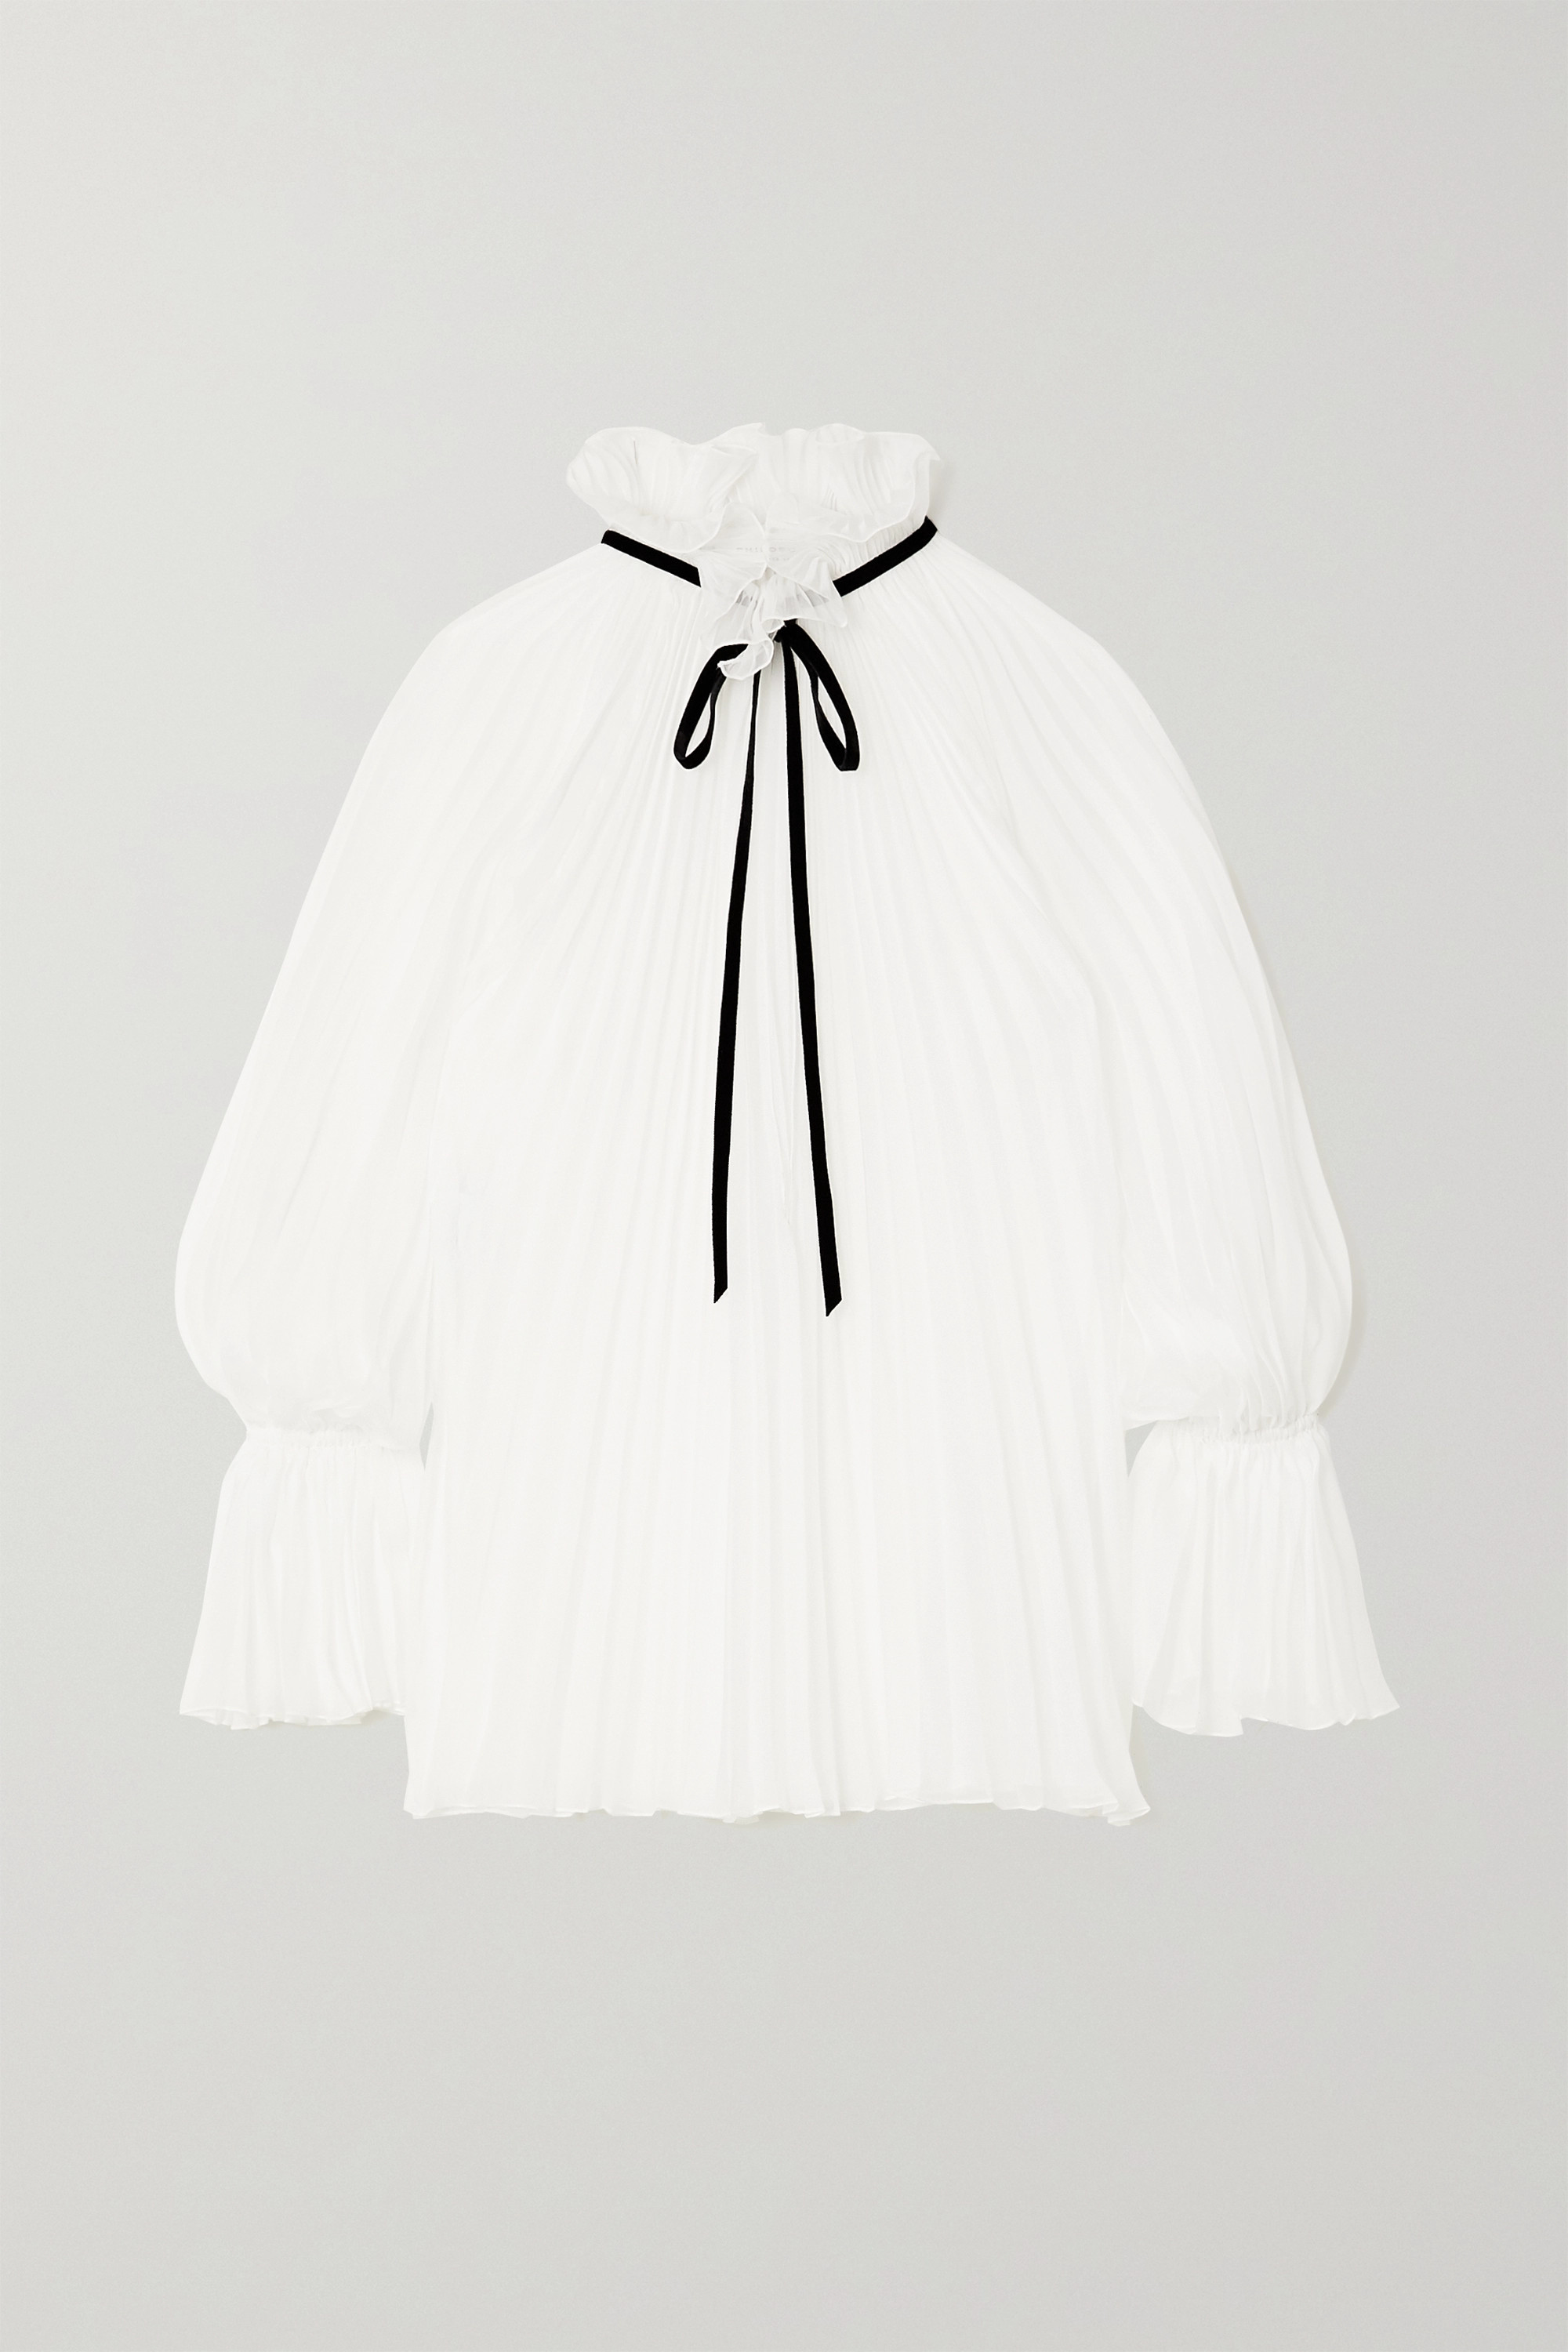 https://cache.net-a-porter.com/images/products/1282002/1282002_in_2000.jpg